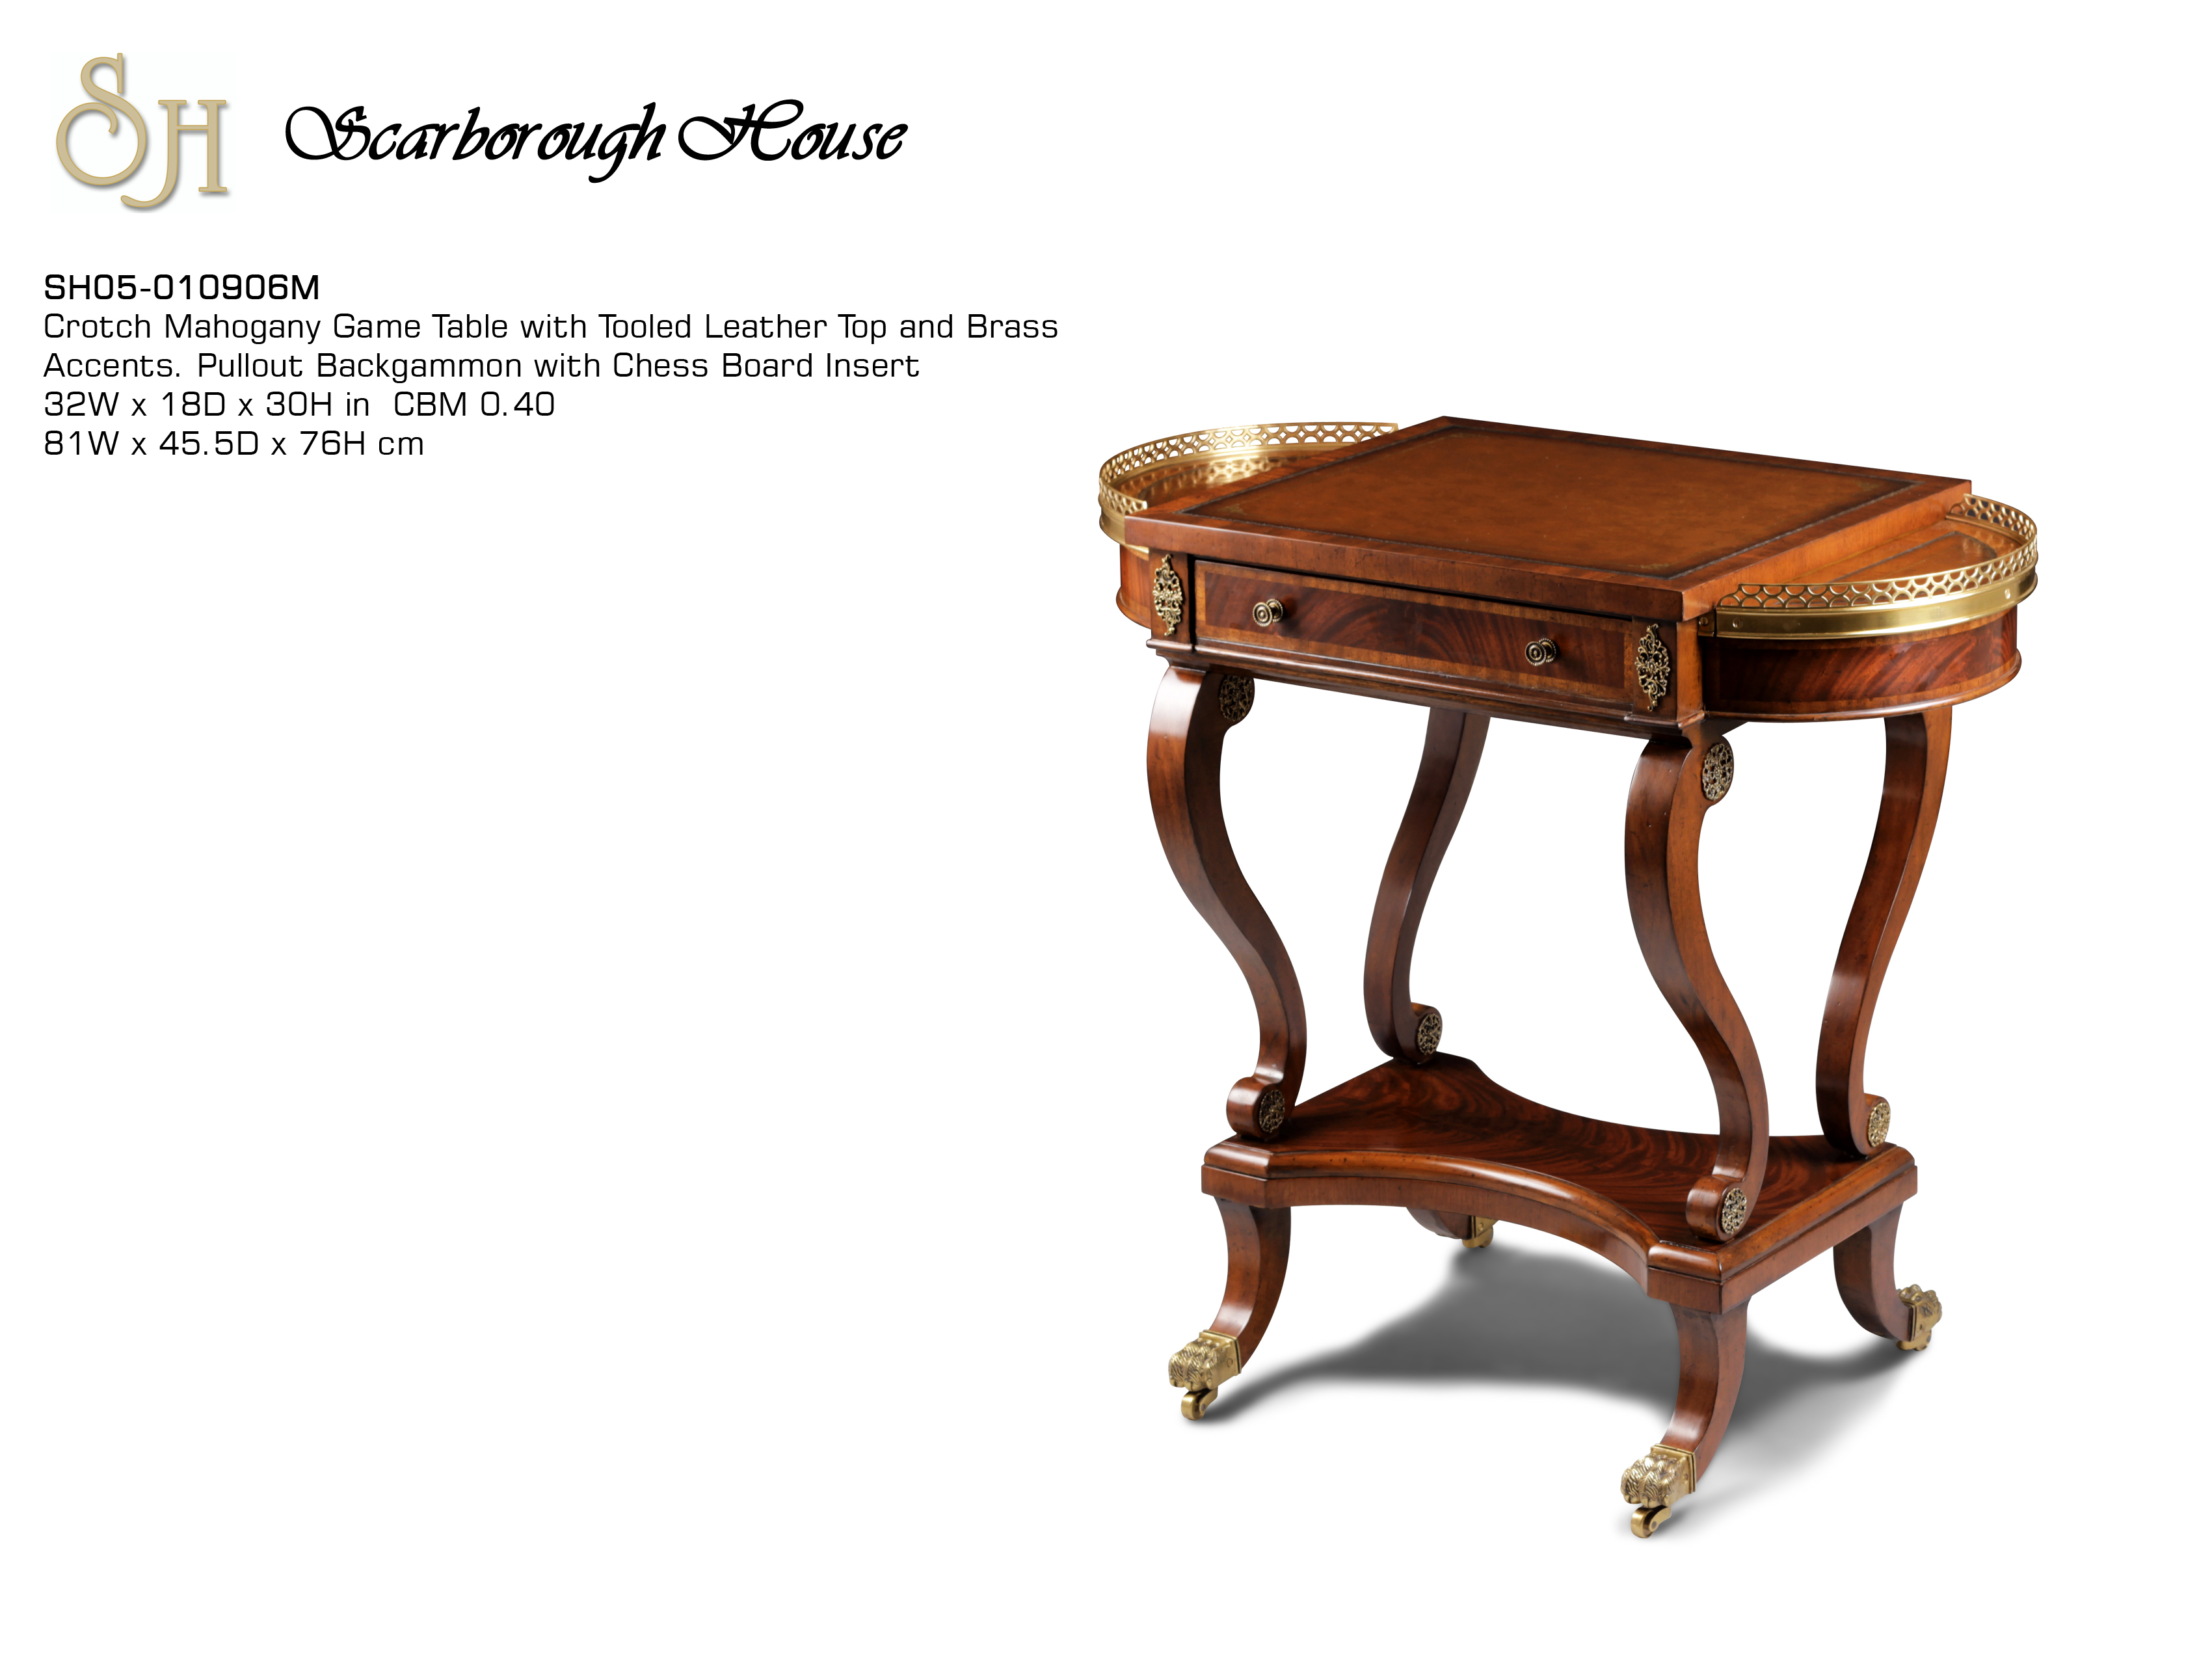 game table scarborough house accent click here for printable small night lamps gold metal round coffee carpet strip threshold square trestle furniture storage cabinet duke pottery